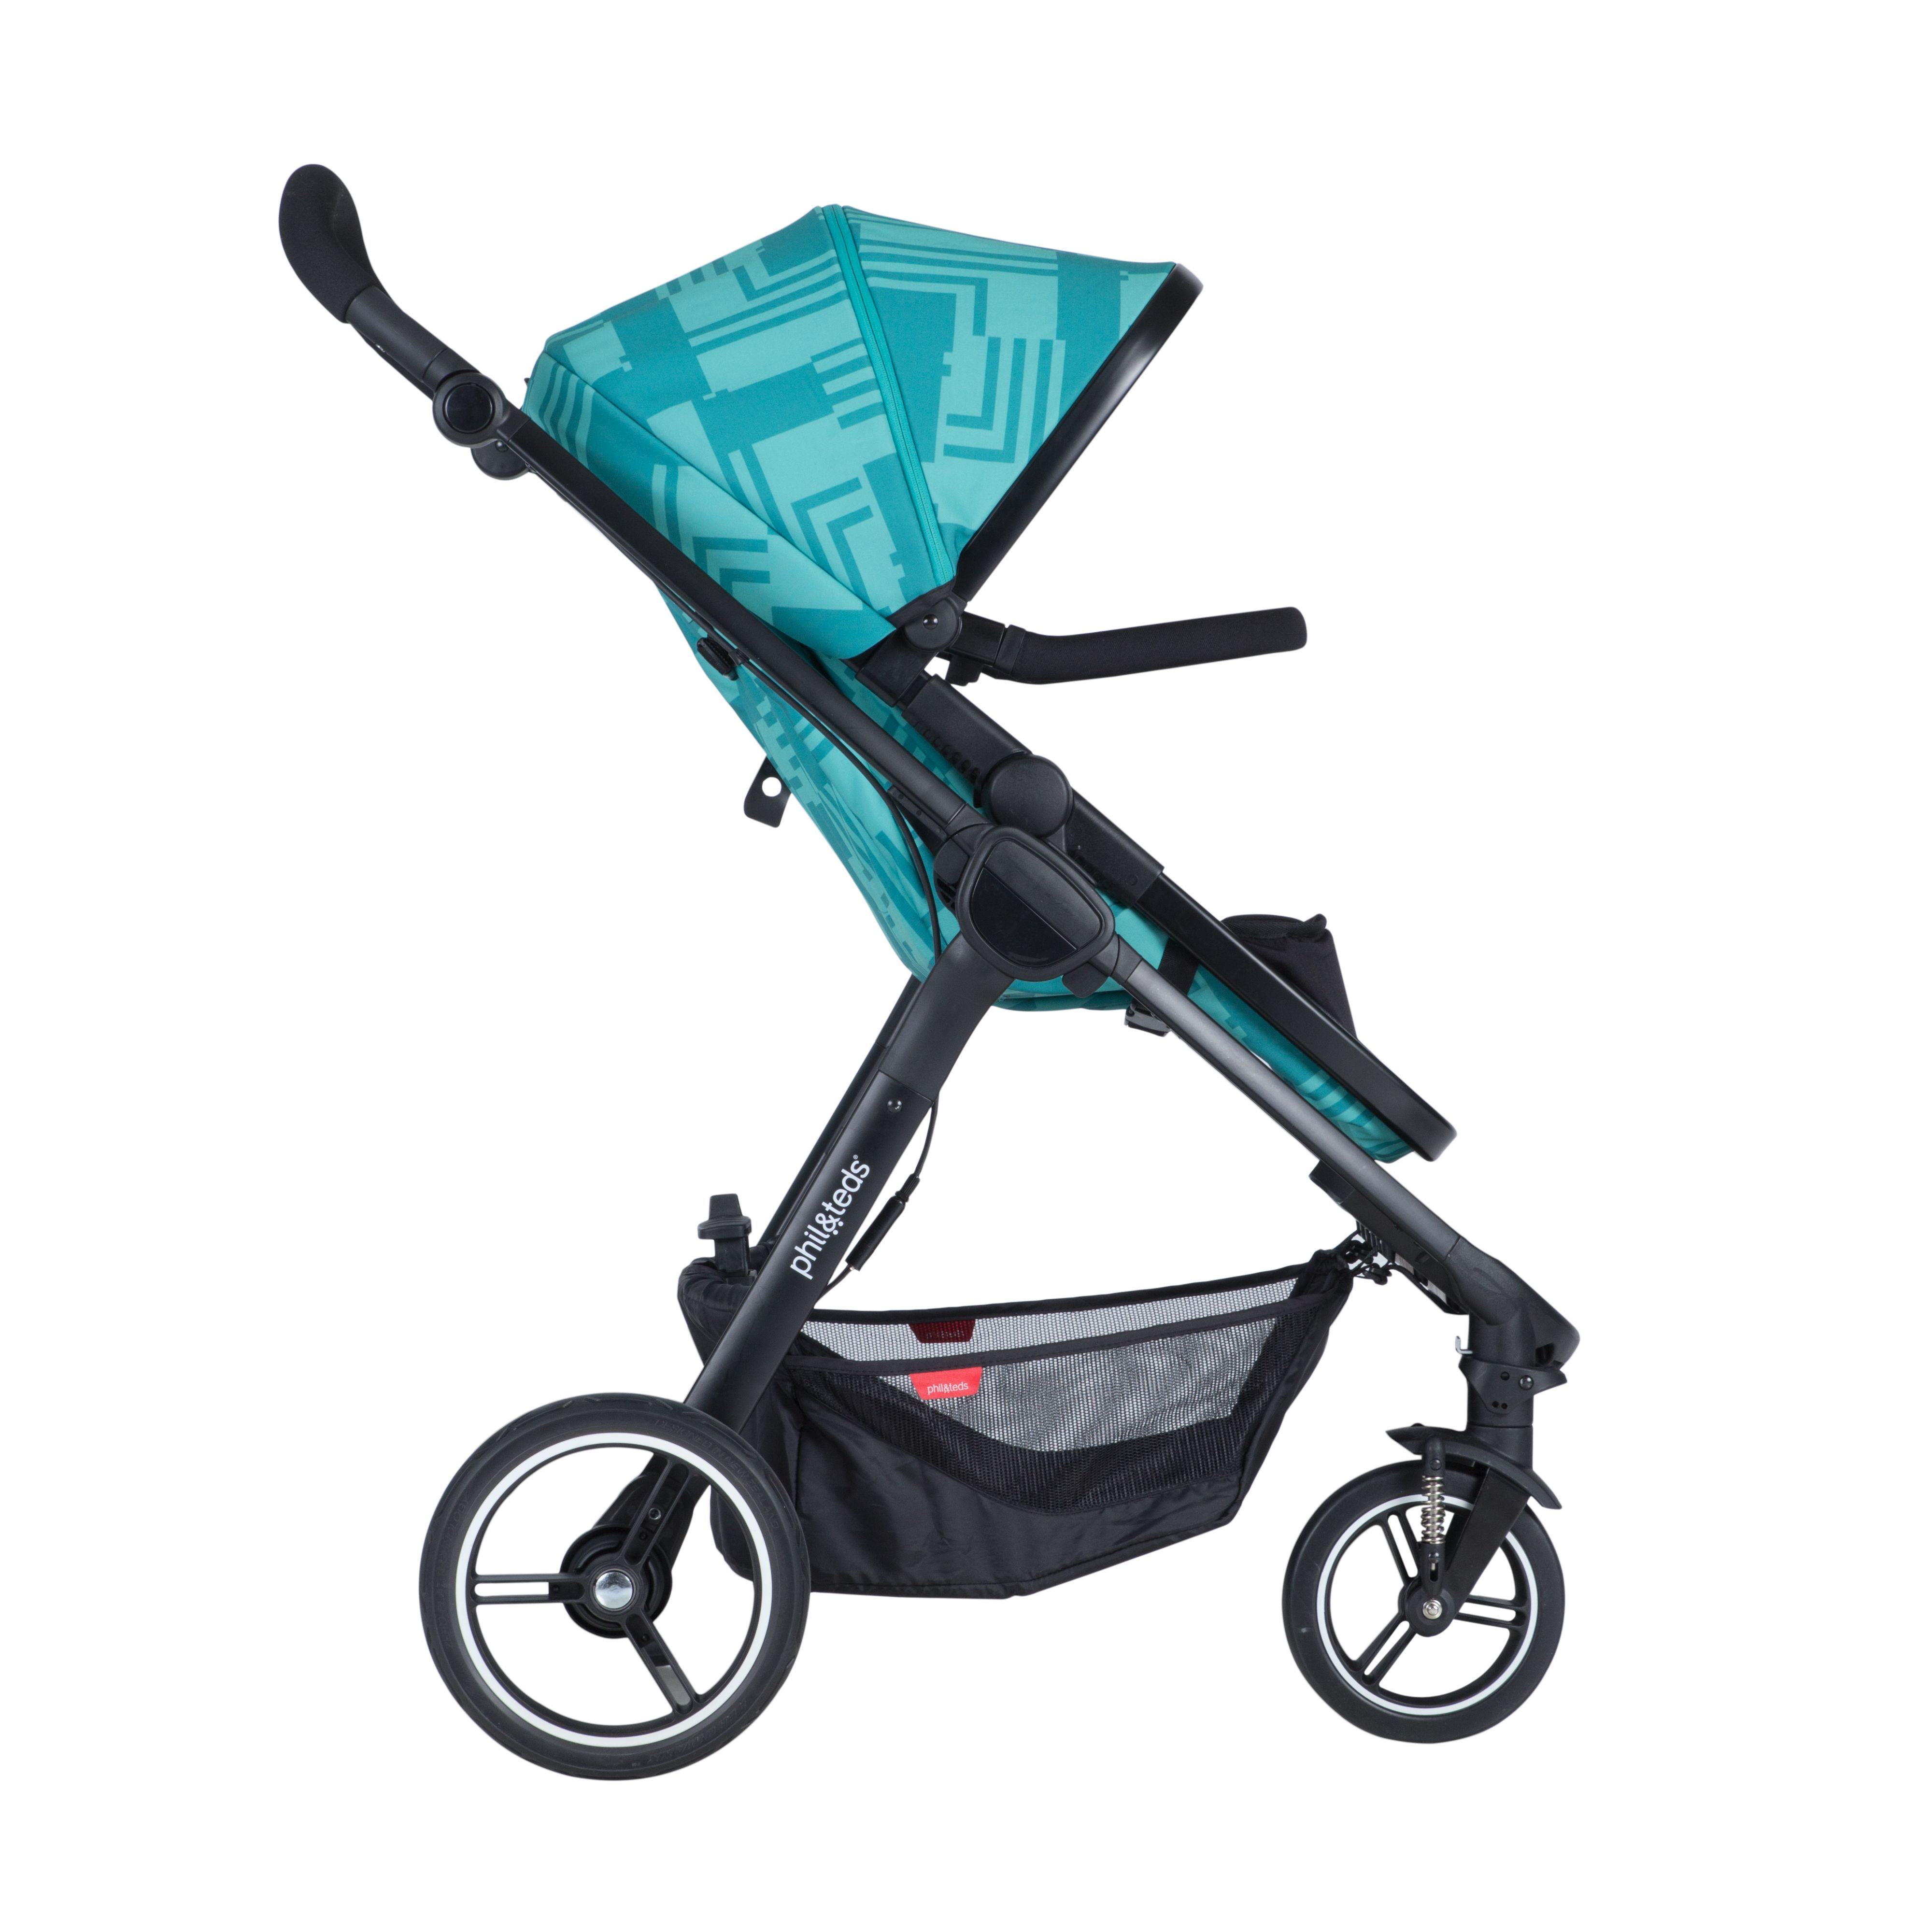 Explore Tricycle Baby Strollers and more